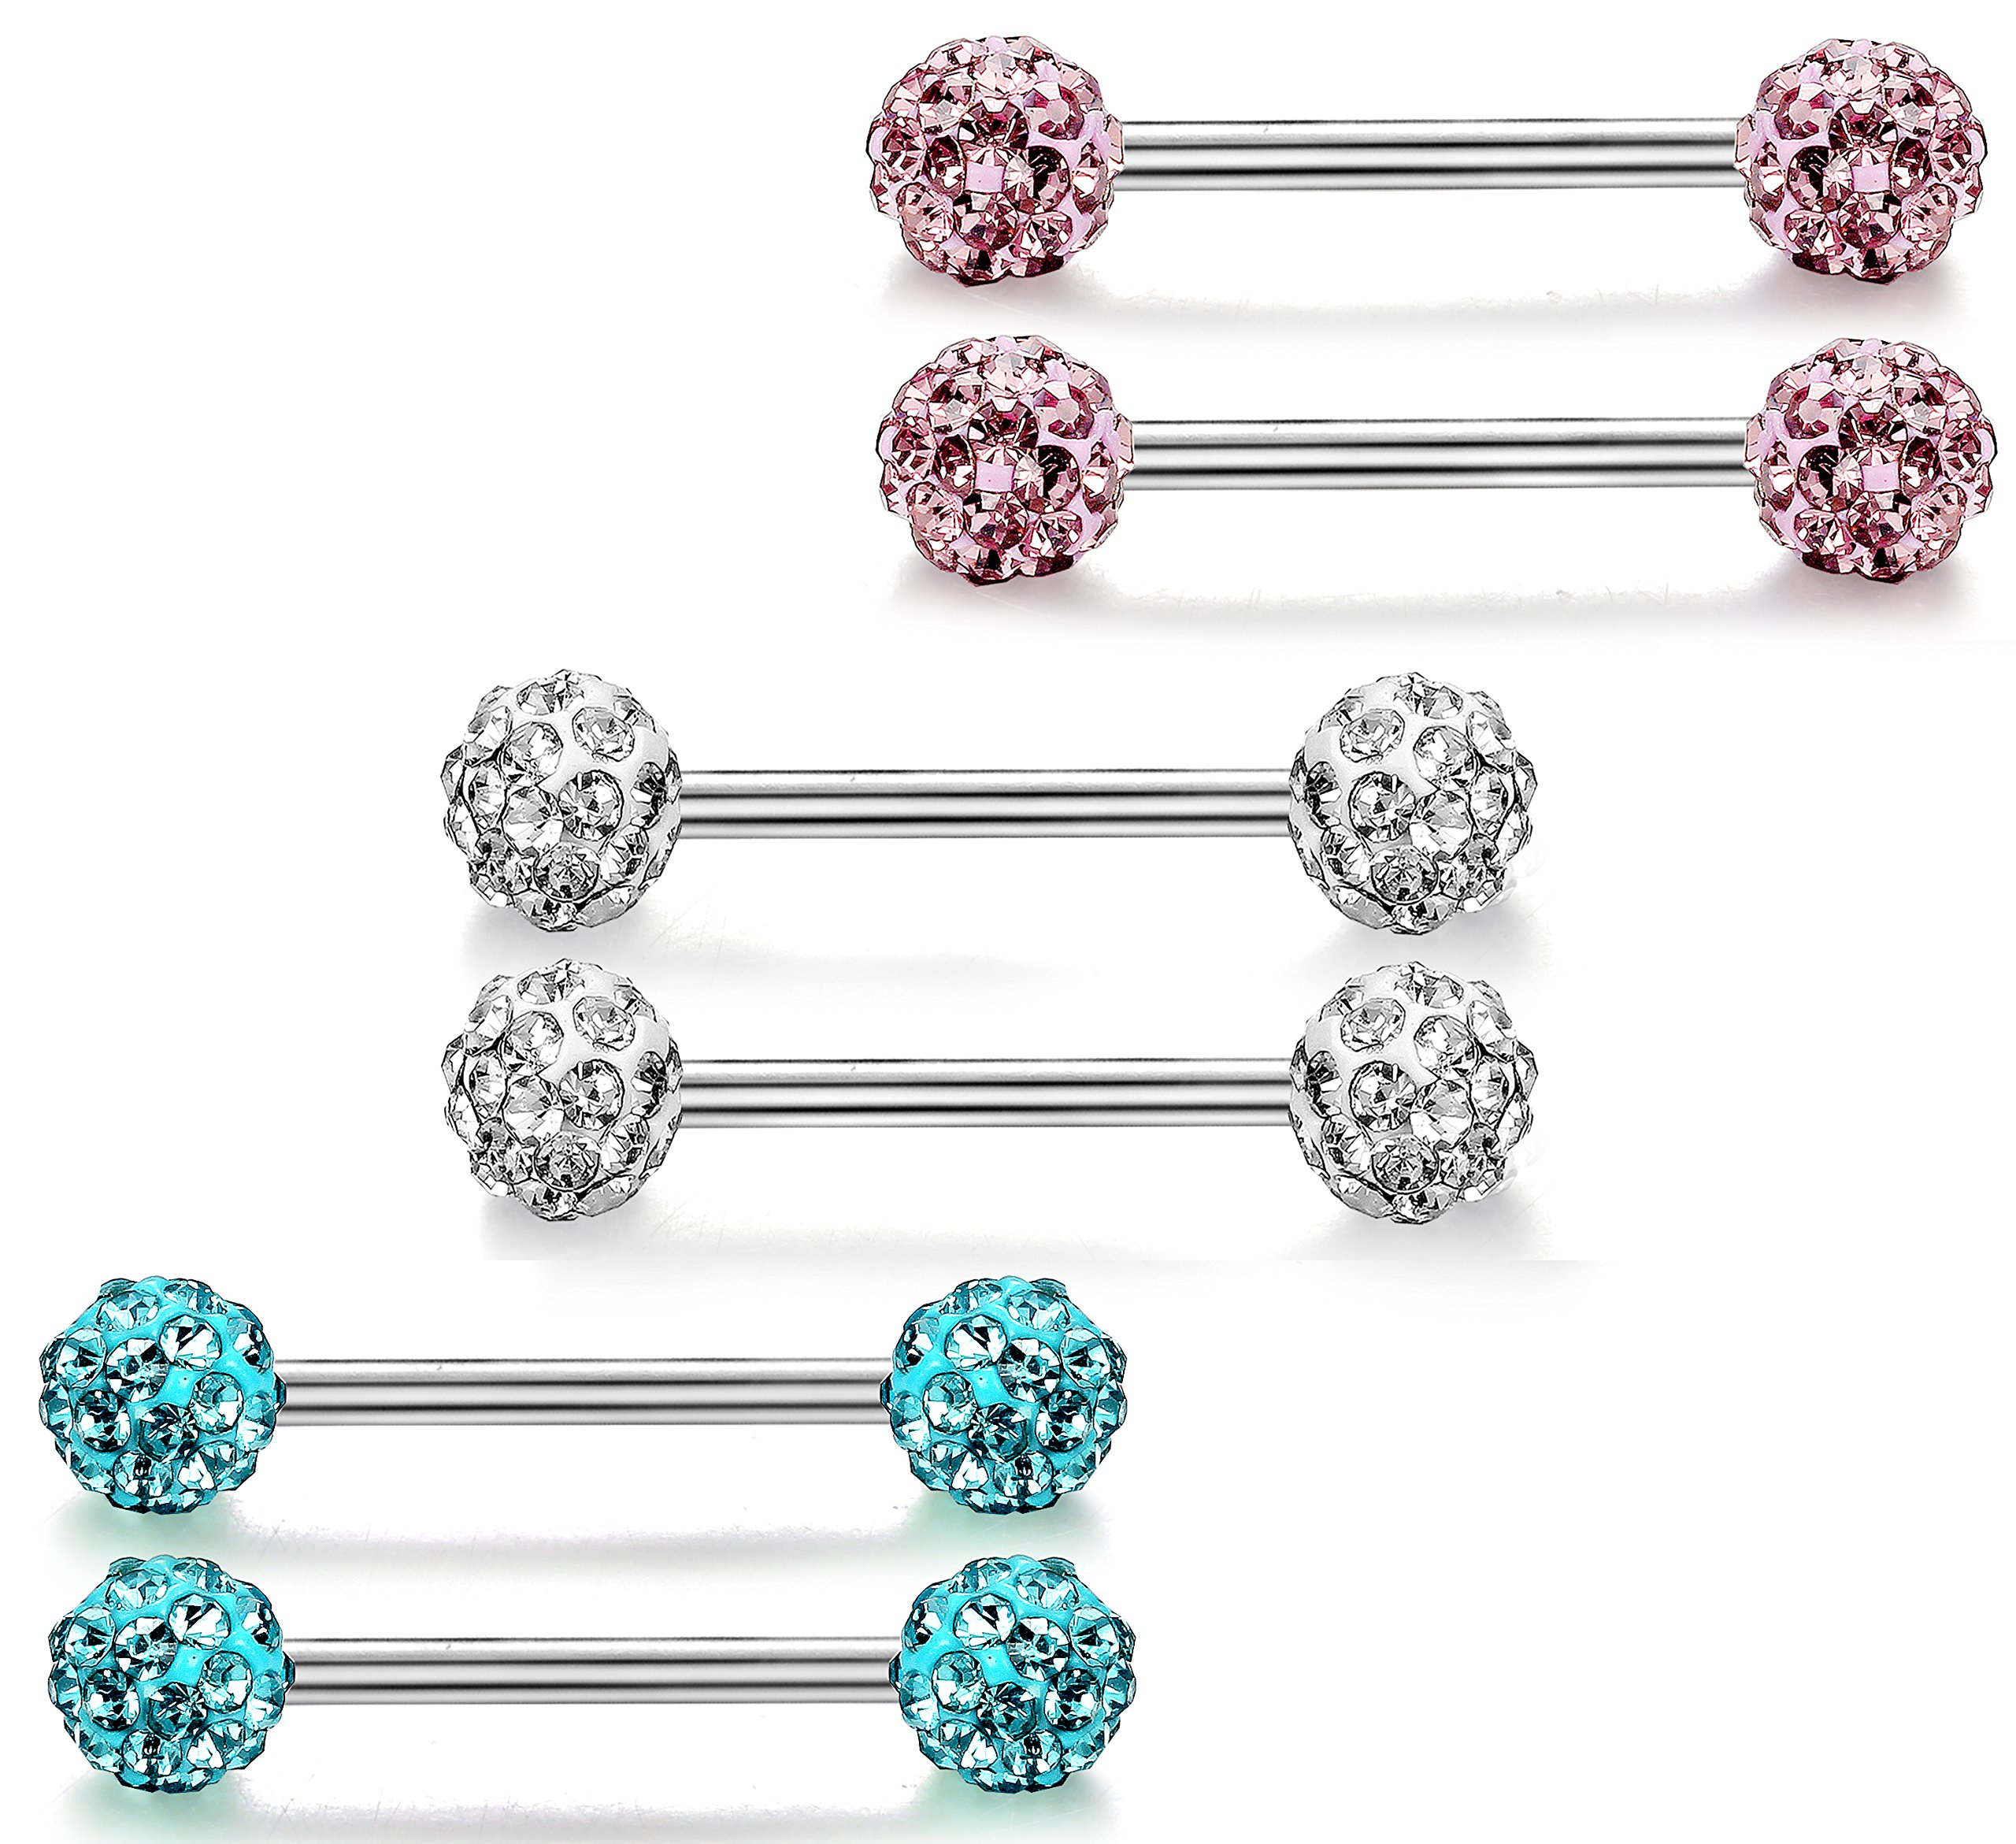 ORAZIO 6 Pcs 316L Stainless Steel Crystal Nipple Piercing 14G Barbell Belly Button Ring for Women